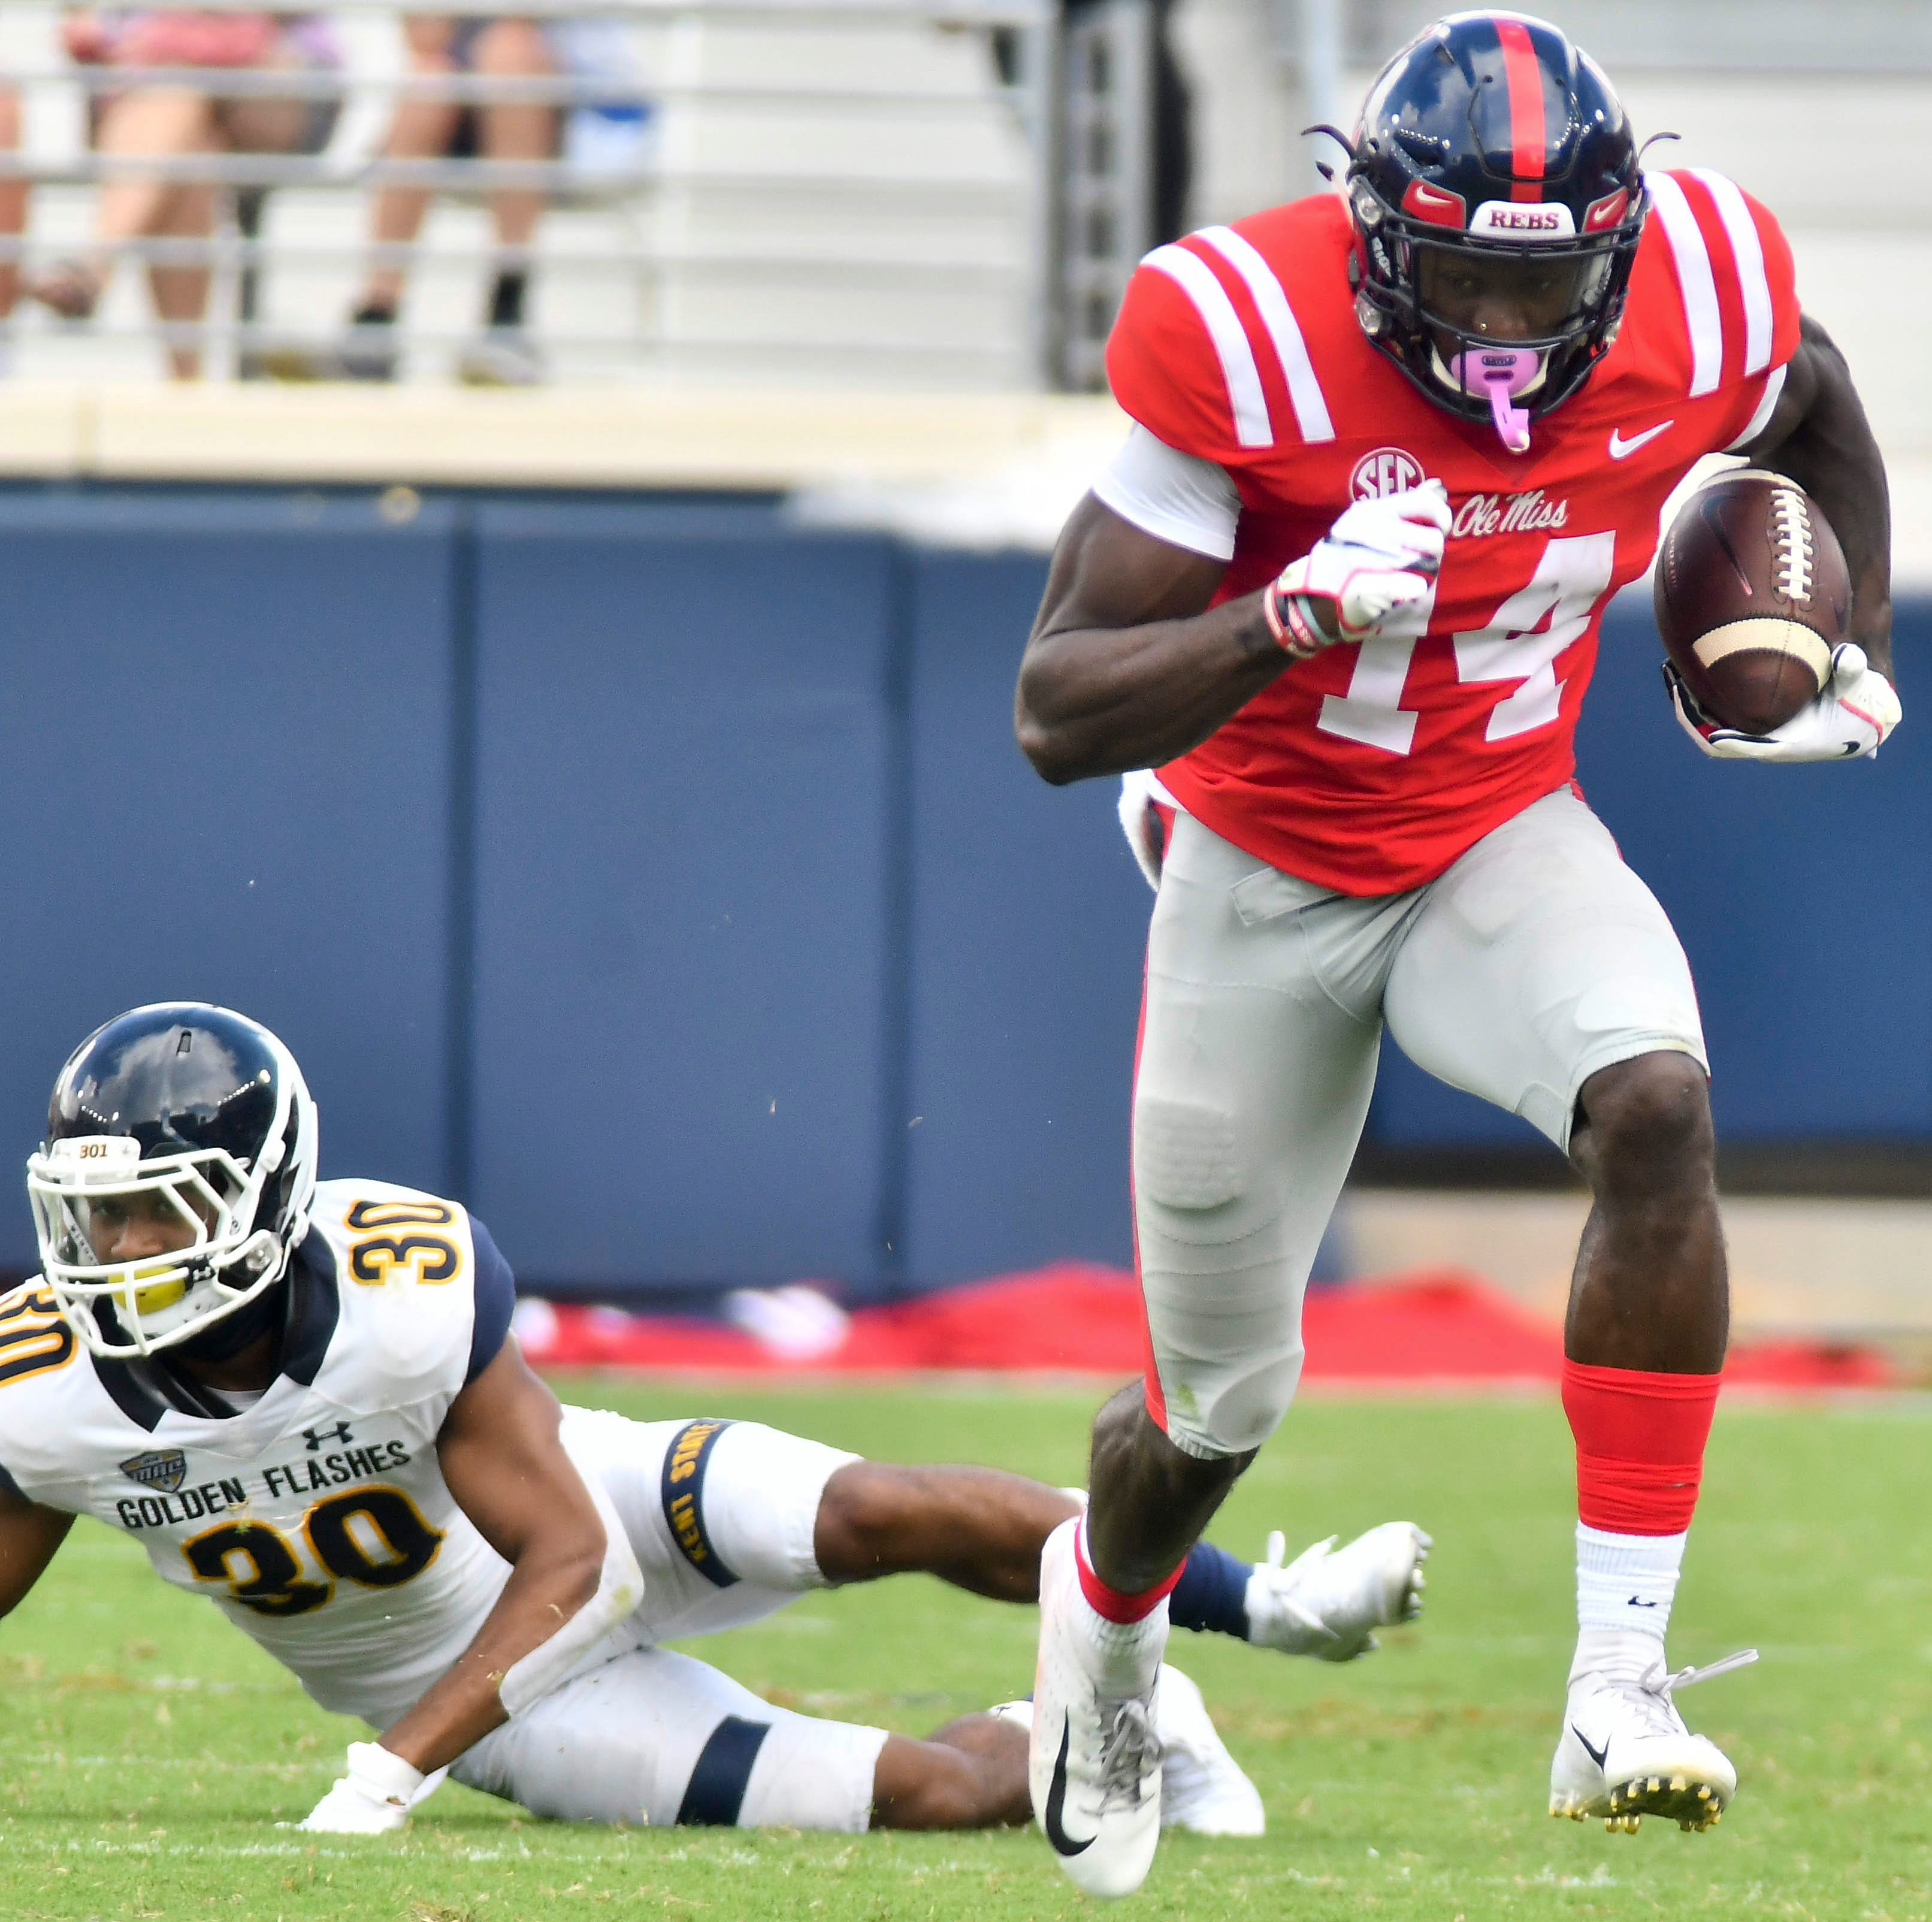 Ole Miss WR D.K. Metcalf out for season with neck injury sustained vs. Arkansas